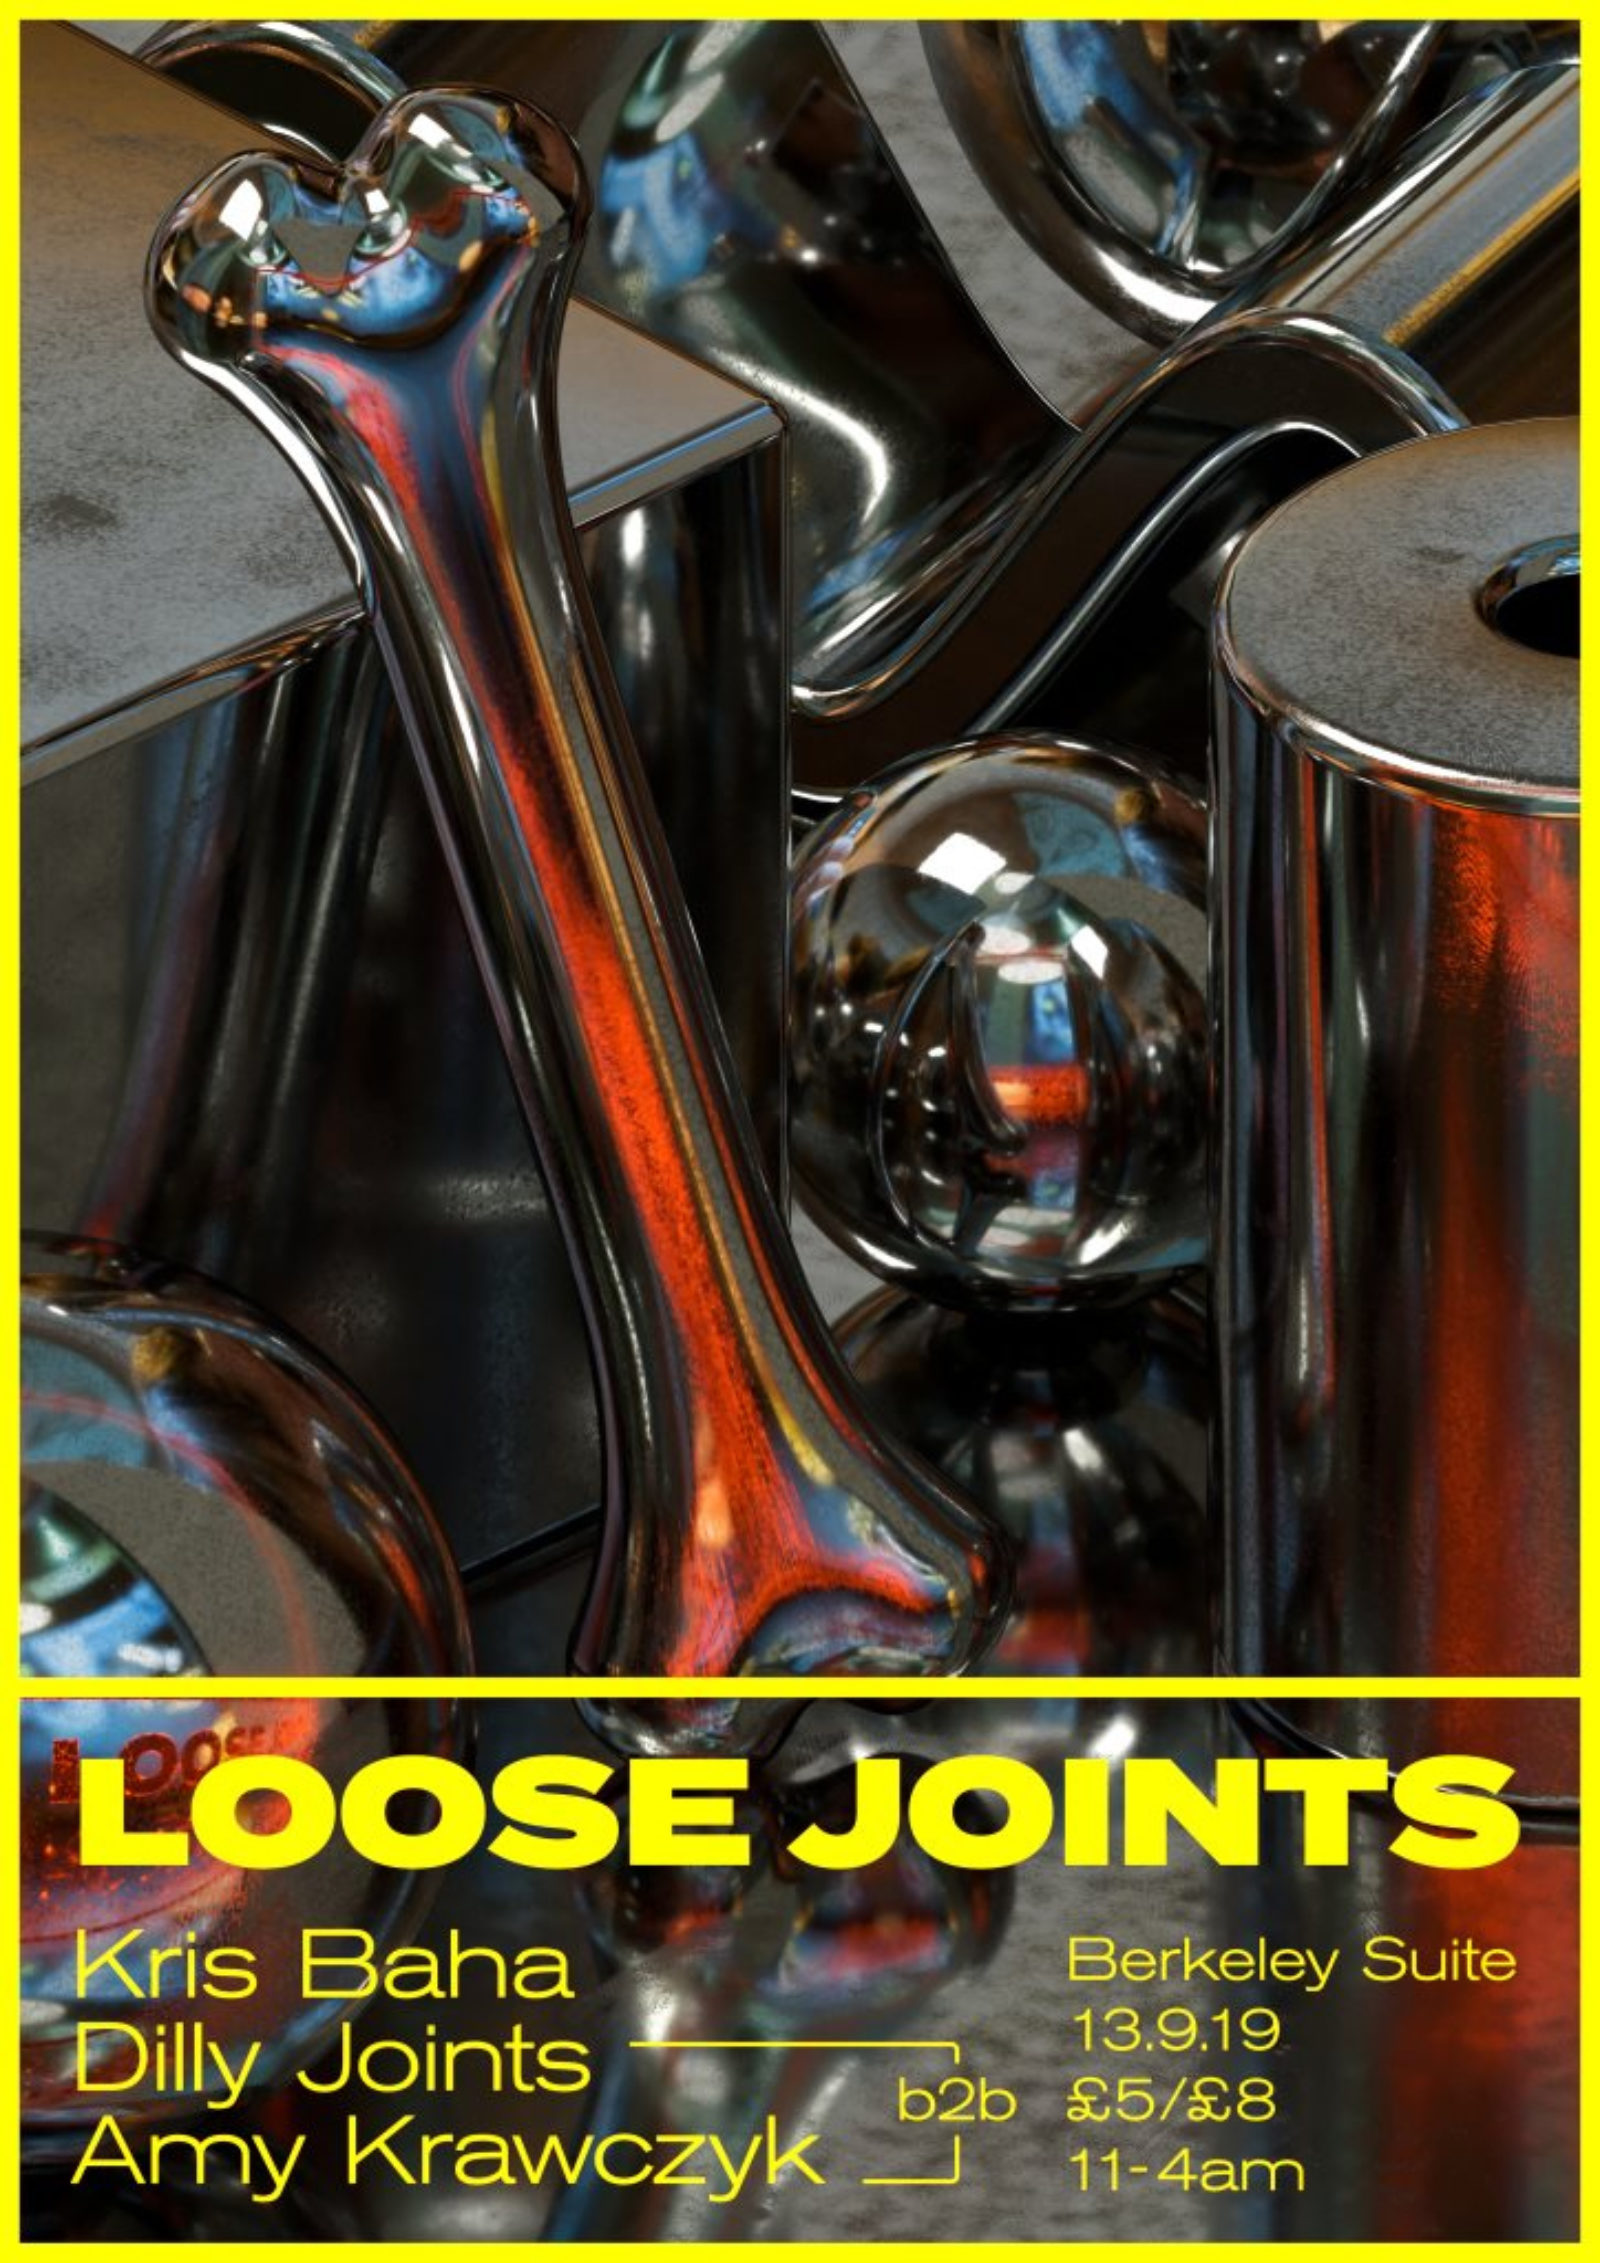 LOOSE JOINTS - KRIS BAHA